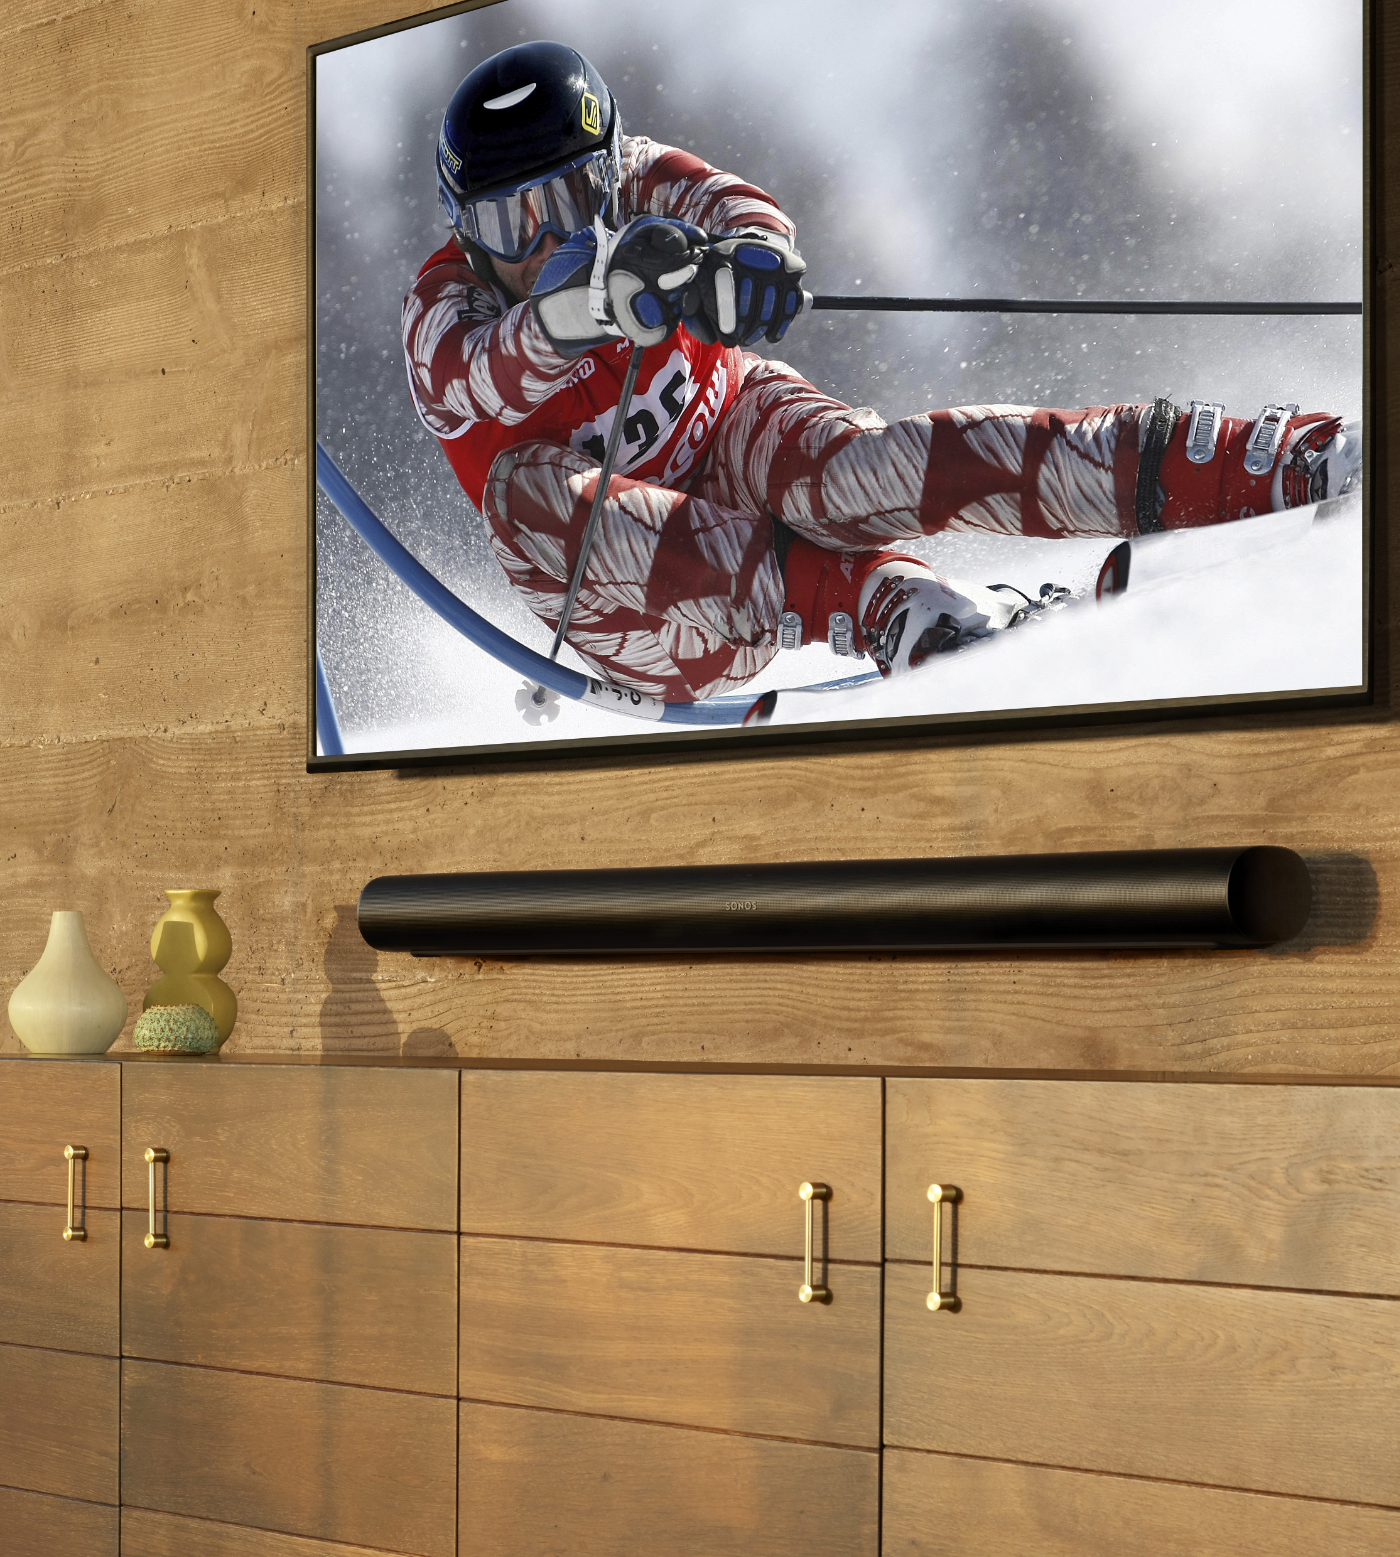 Arc_Black-Lifestyle-At_Home_With_Sonos-Skiing-Q1FY21_MST-MST_JPEG_fid118970